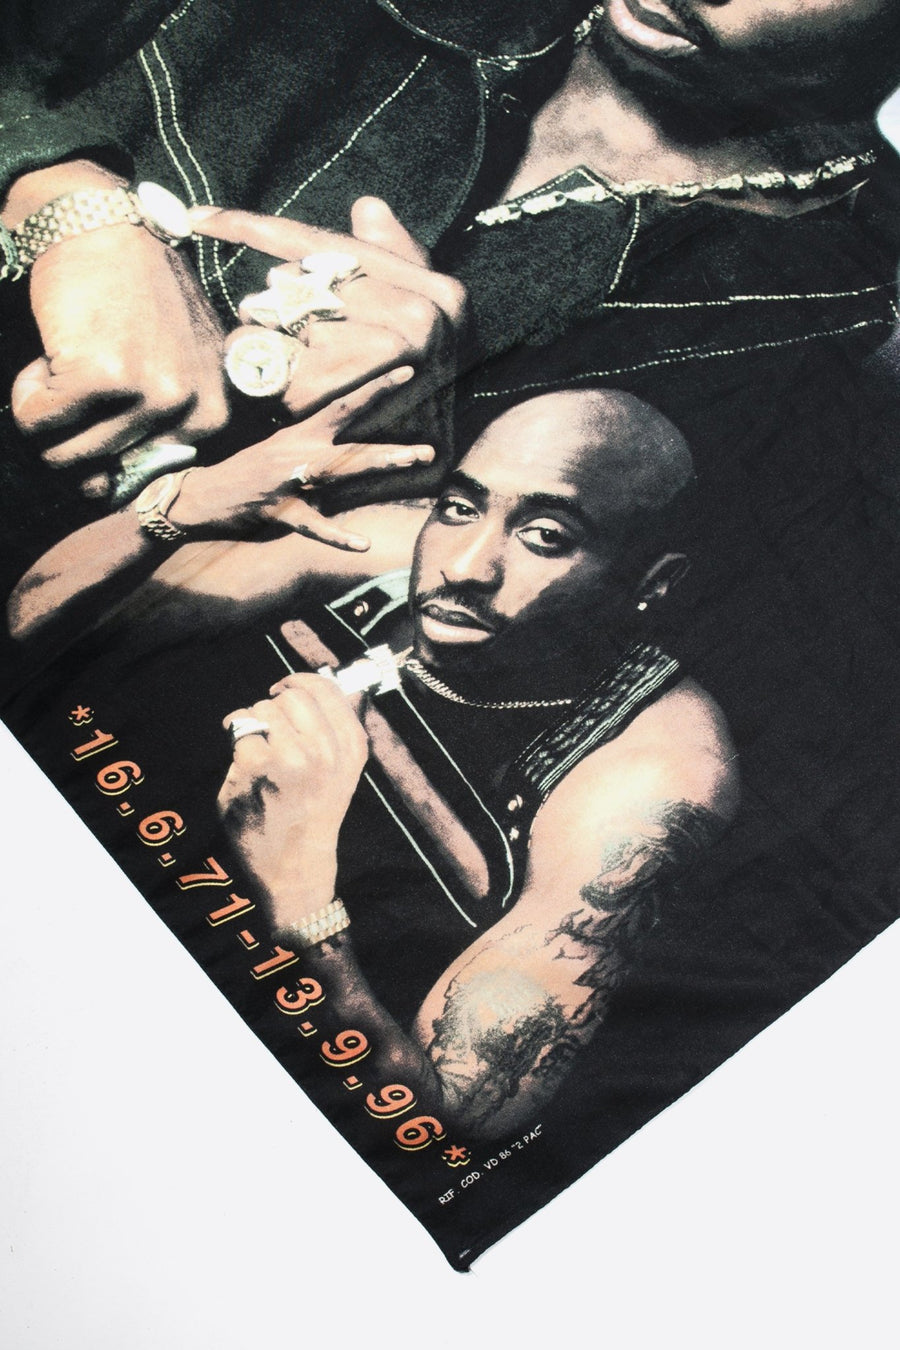 Drapeau Tupac 1996 - WASTED PARIS